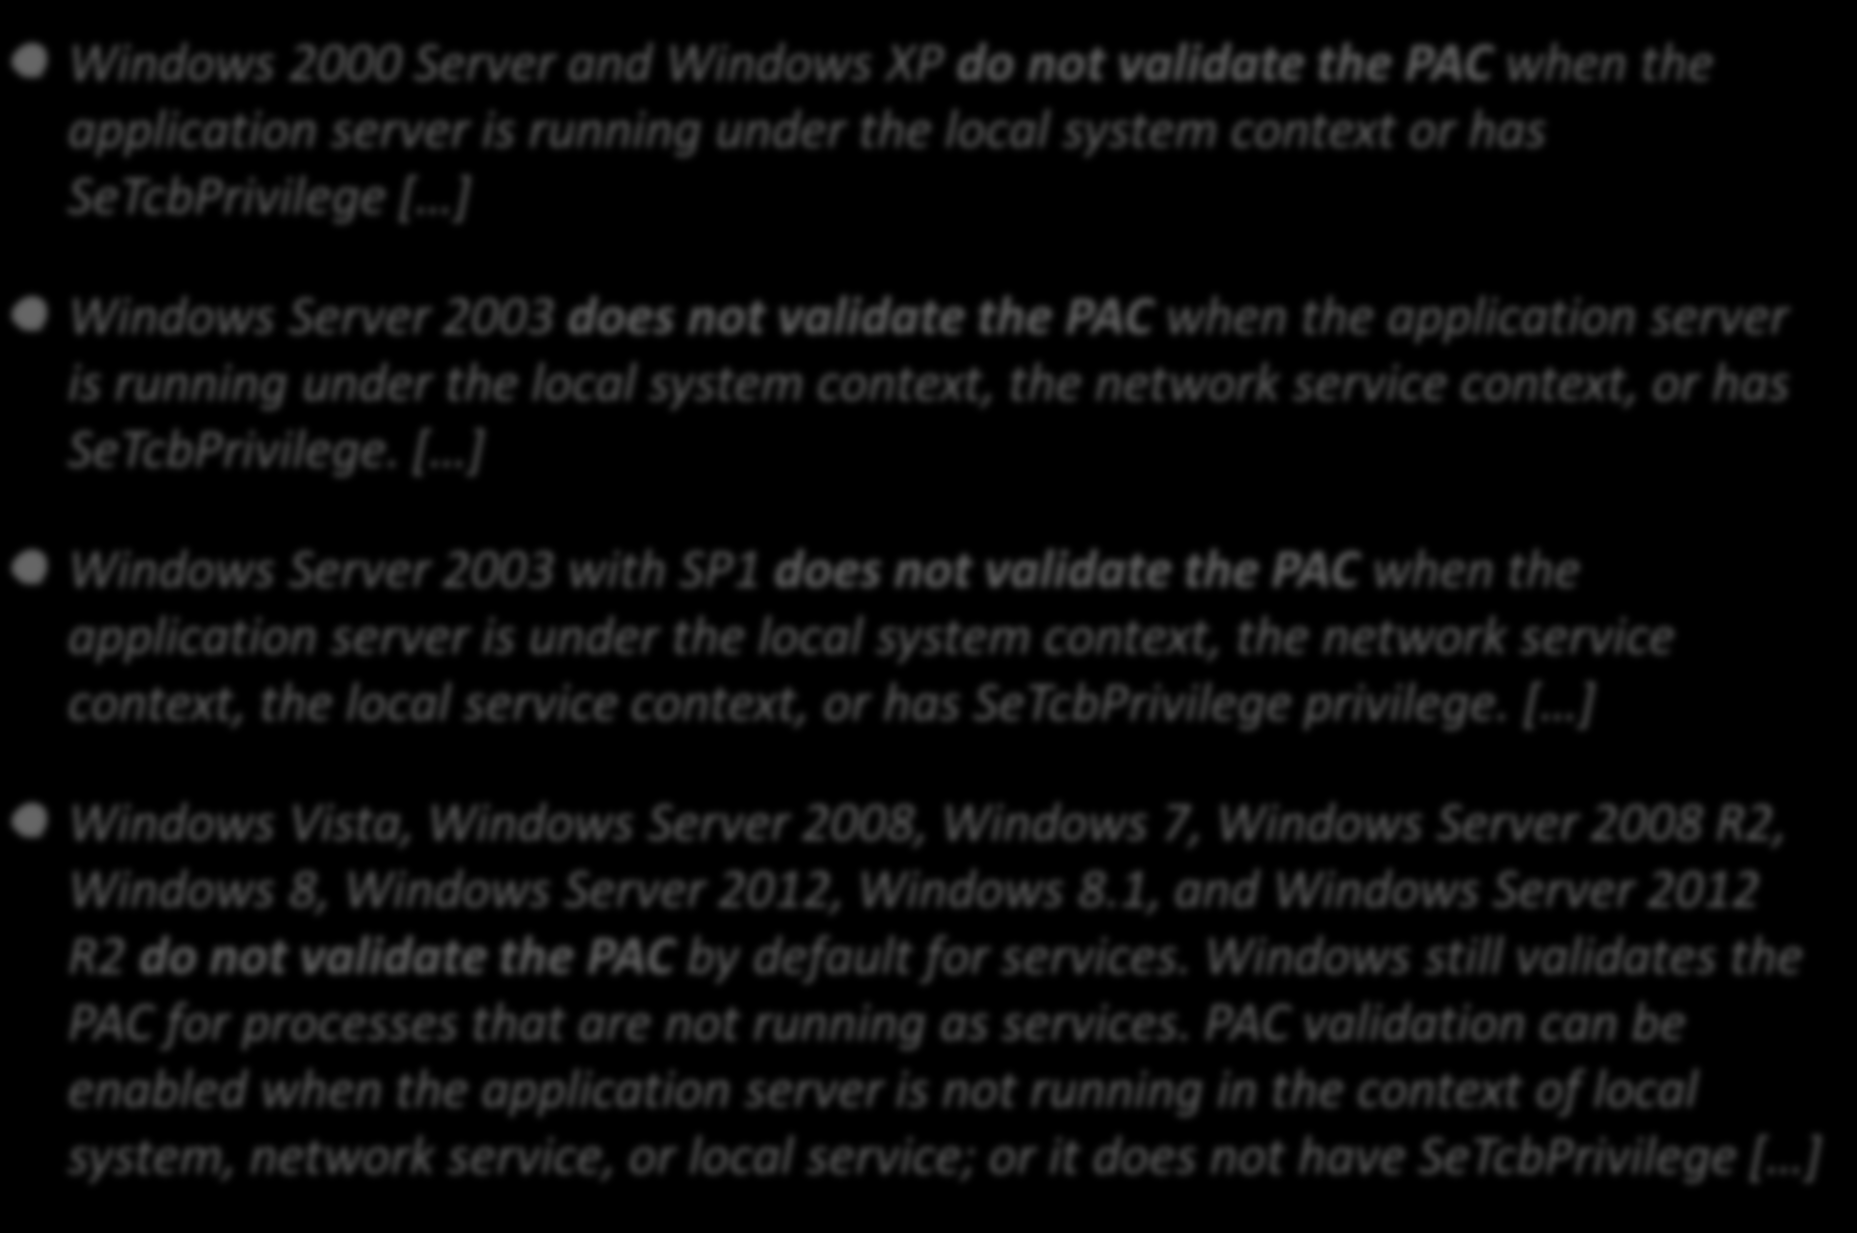 PAC Signature Windows 2000 Server and Windows XP do not validate the PAC when the application server is running under the local system context or has SeTcbPrivilege [ ] Windows Server 2003 does not